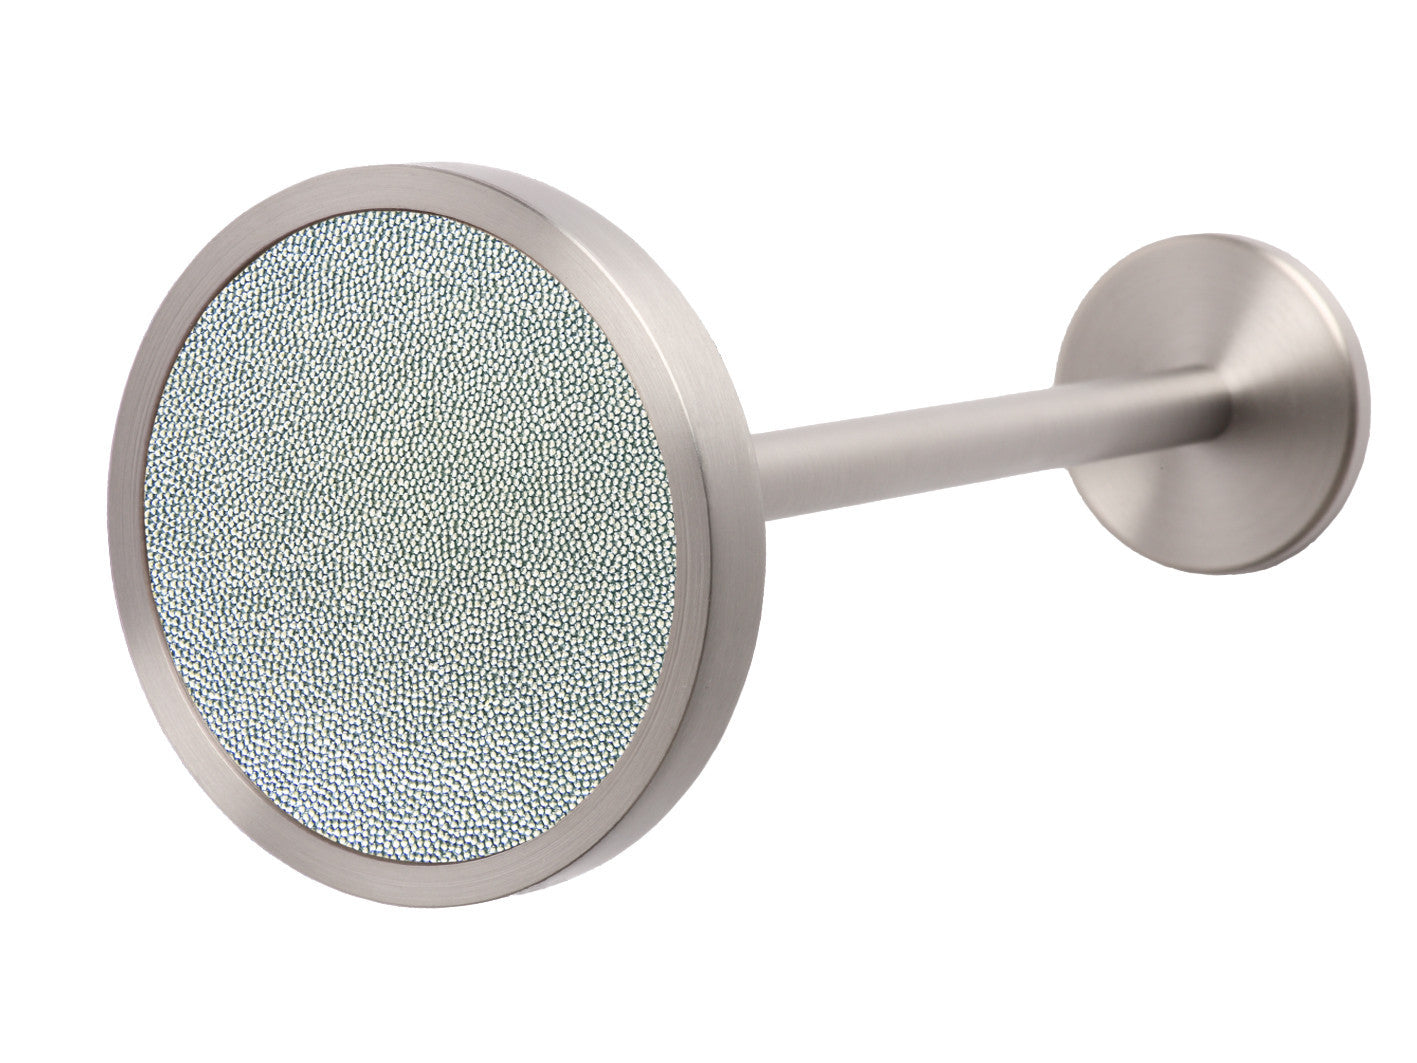 Stainless Steel Curtain Hold Back In Moonlight Blue